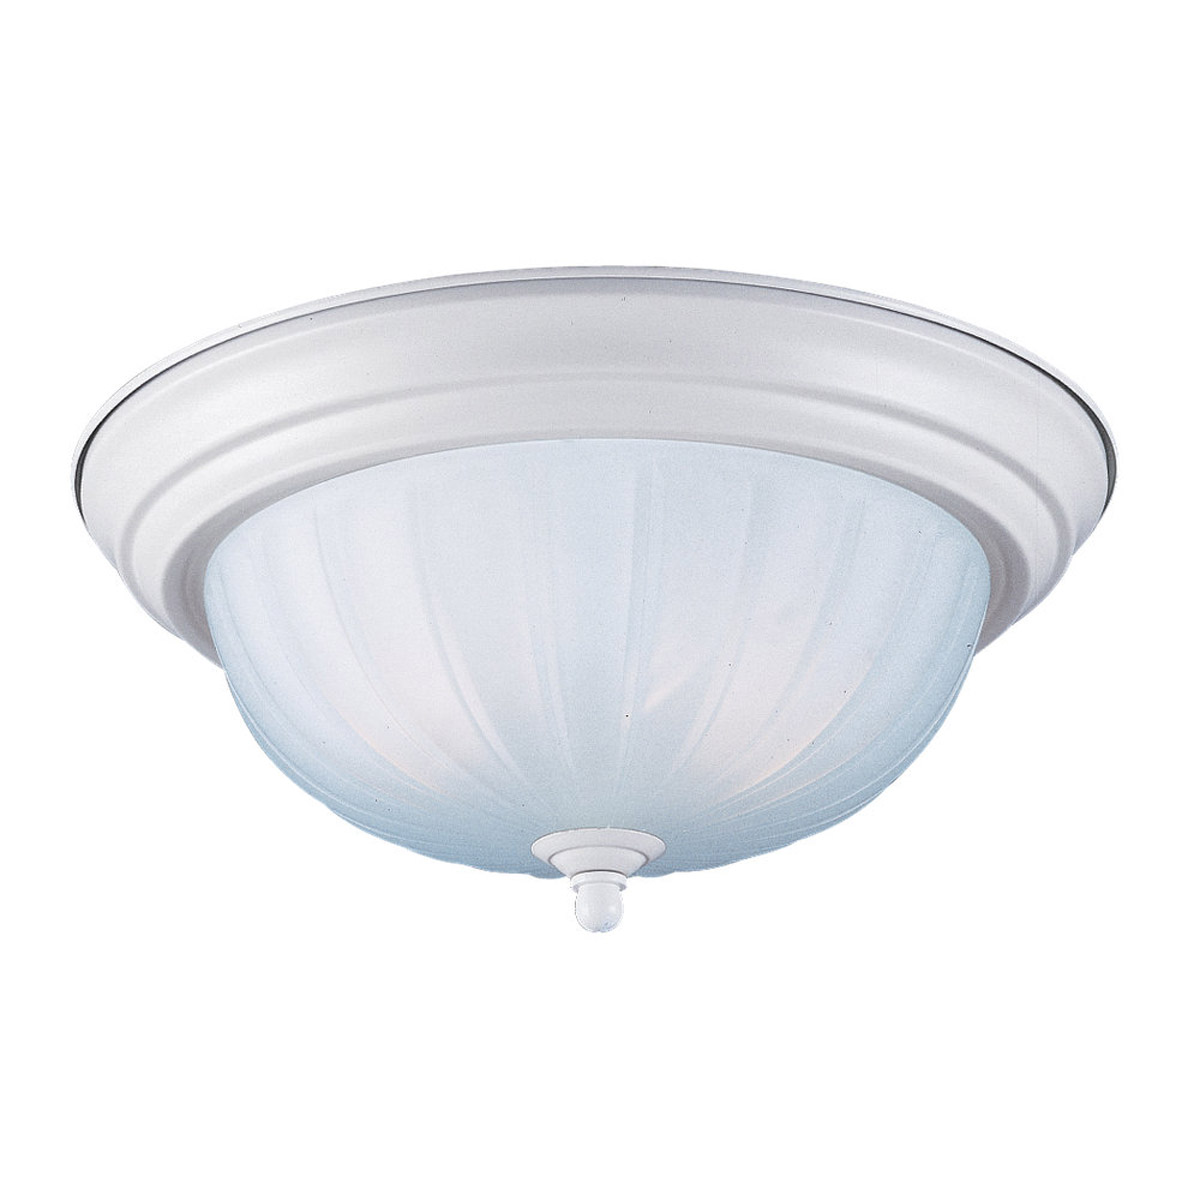 Sea Gull Lighting Floyd 3 Light Flush Mount in White 7506-15